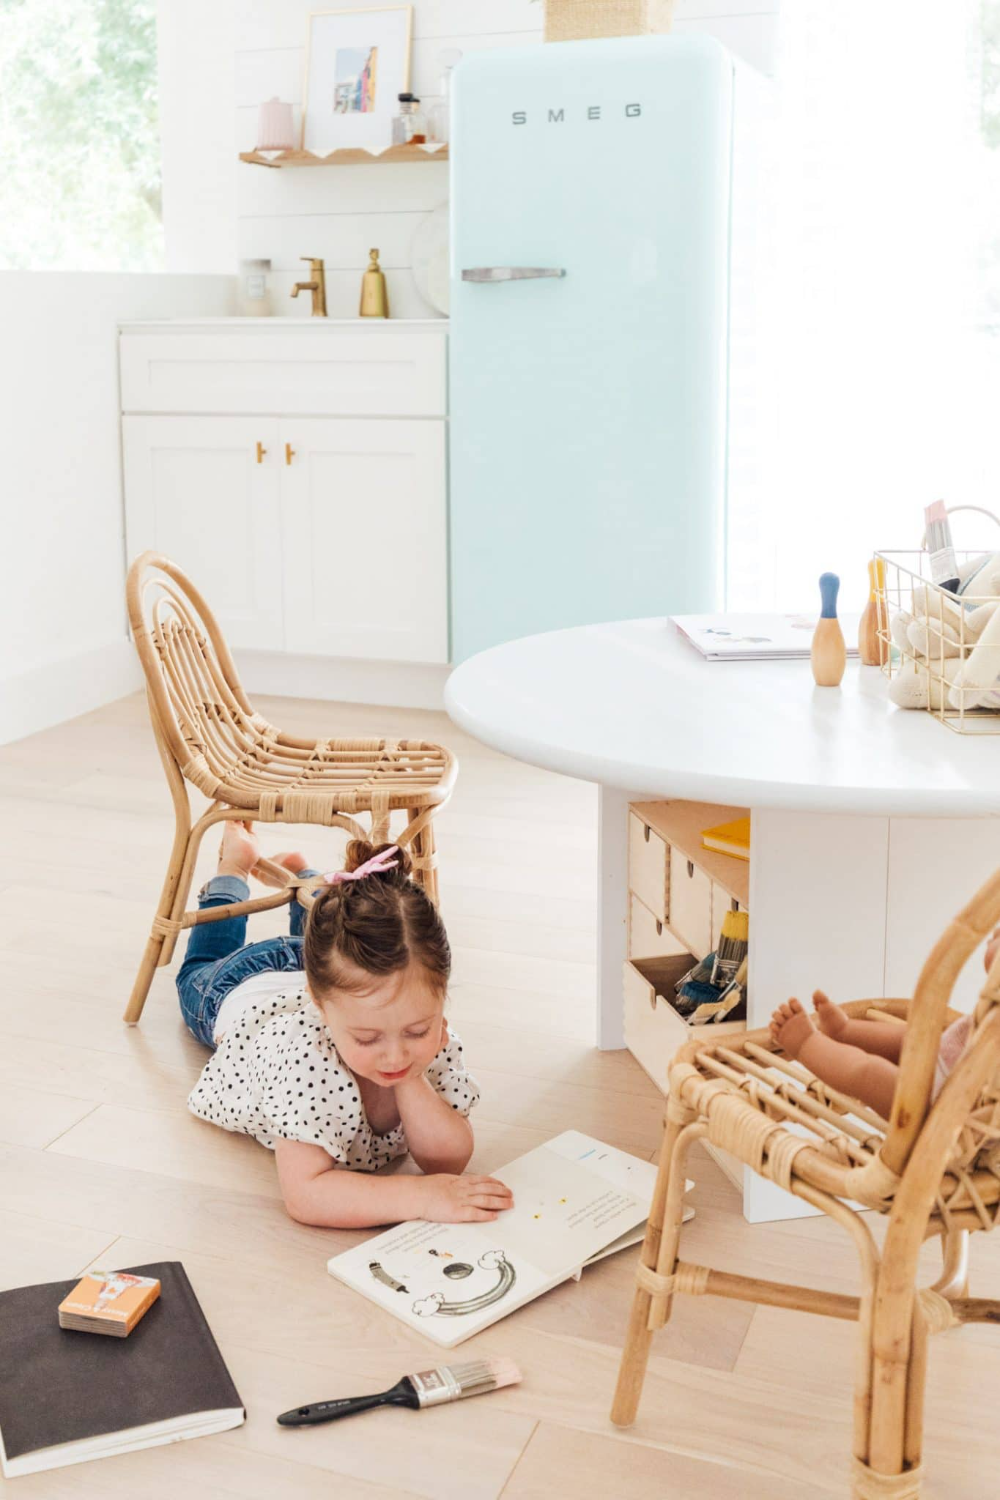 An easy DIY Kids Play Table that's customizable for any age and size and for storing all your little one's little things. #sugarandcloth #Kidsplaytable #Kidsactivitytable #Childrenstable #Ikeakidstable #Kidsarttable #diytable #playroom #kidsdecor